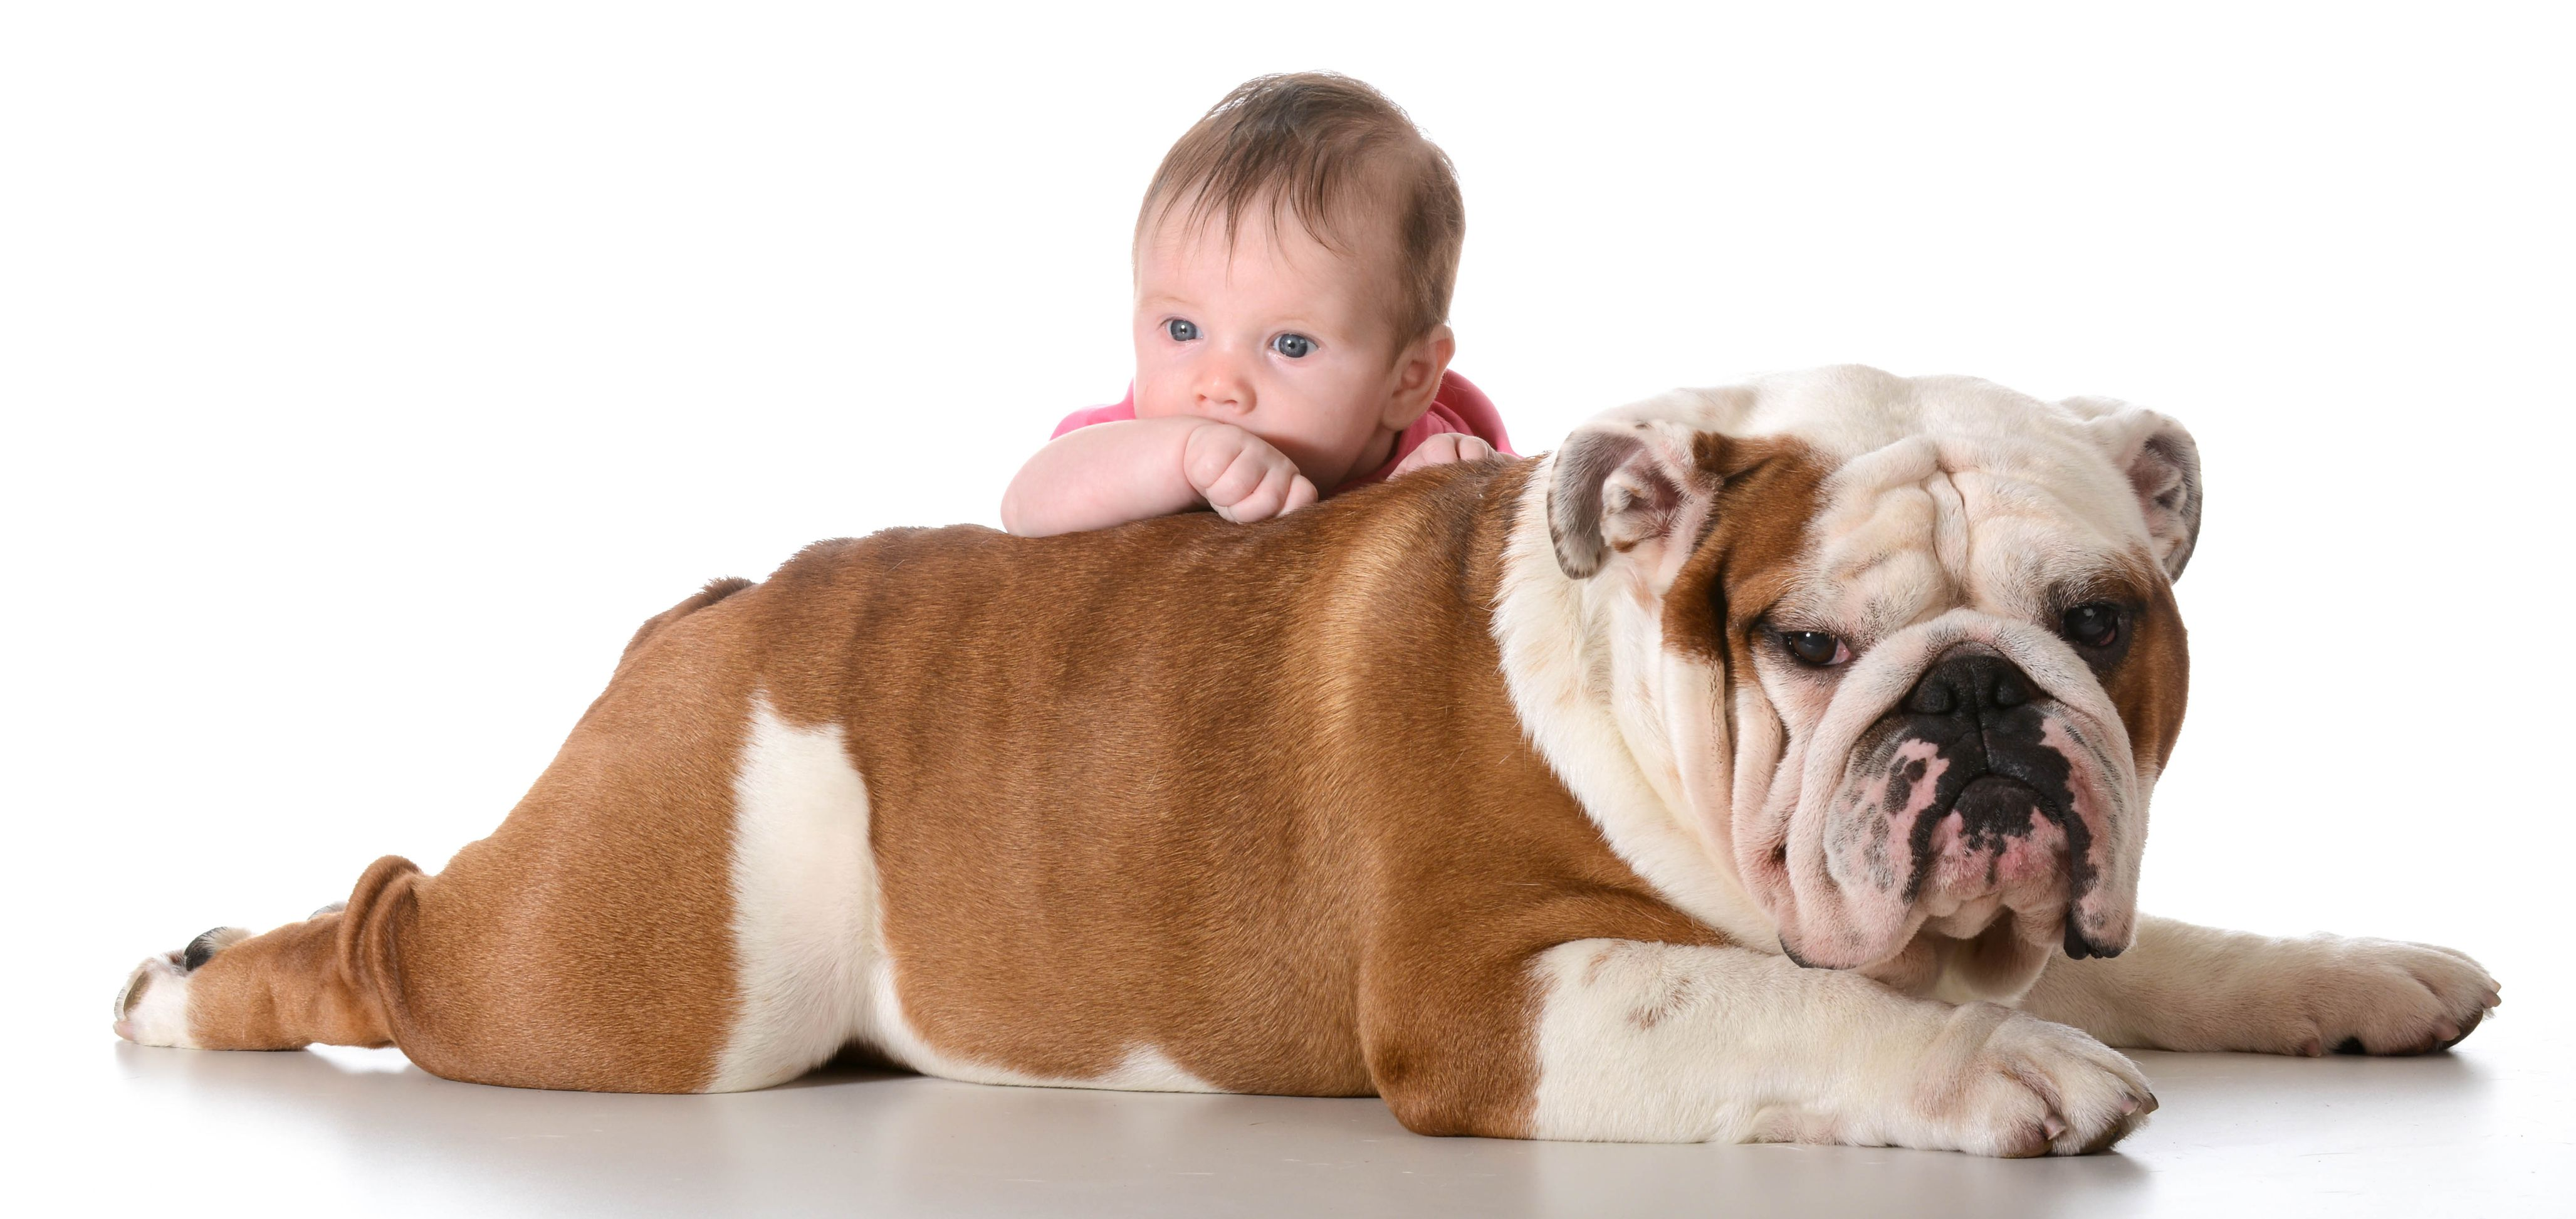 Bulldog Calm Courageous And Friendly Dogs And Kids Bulldog